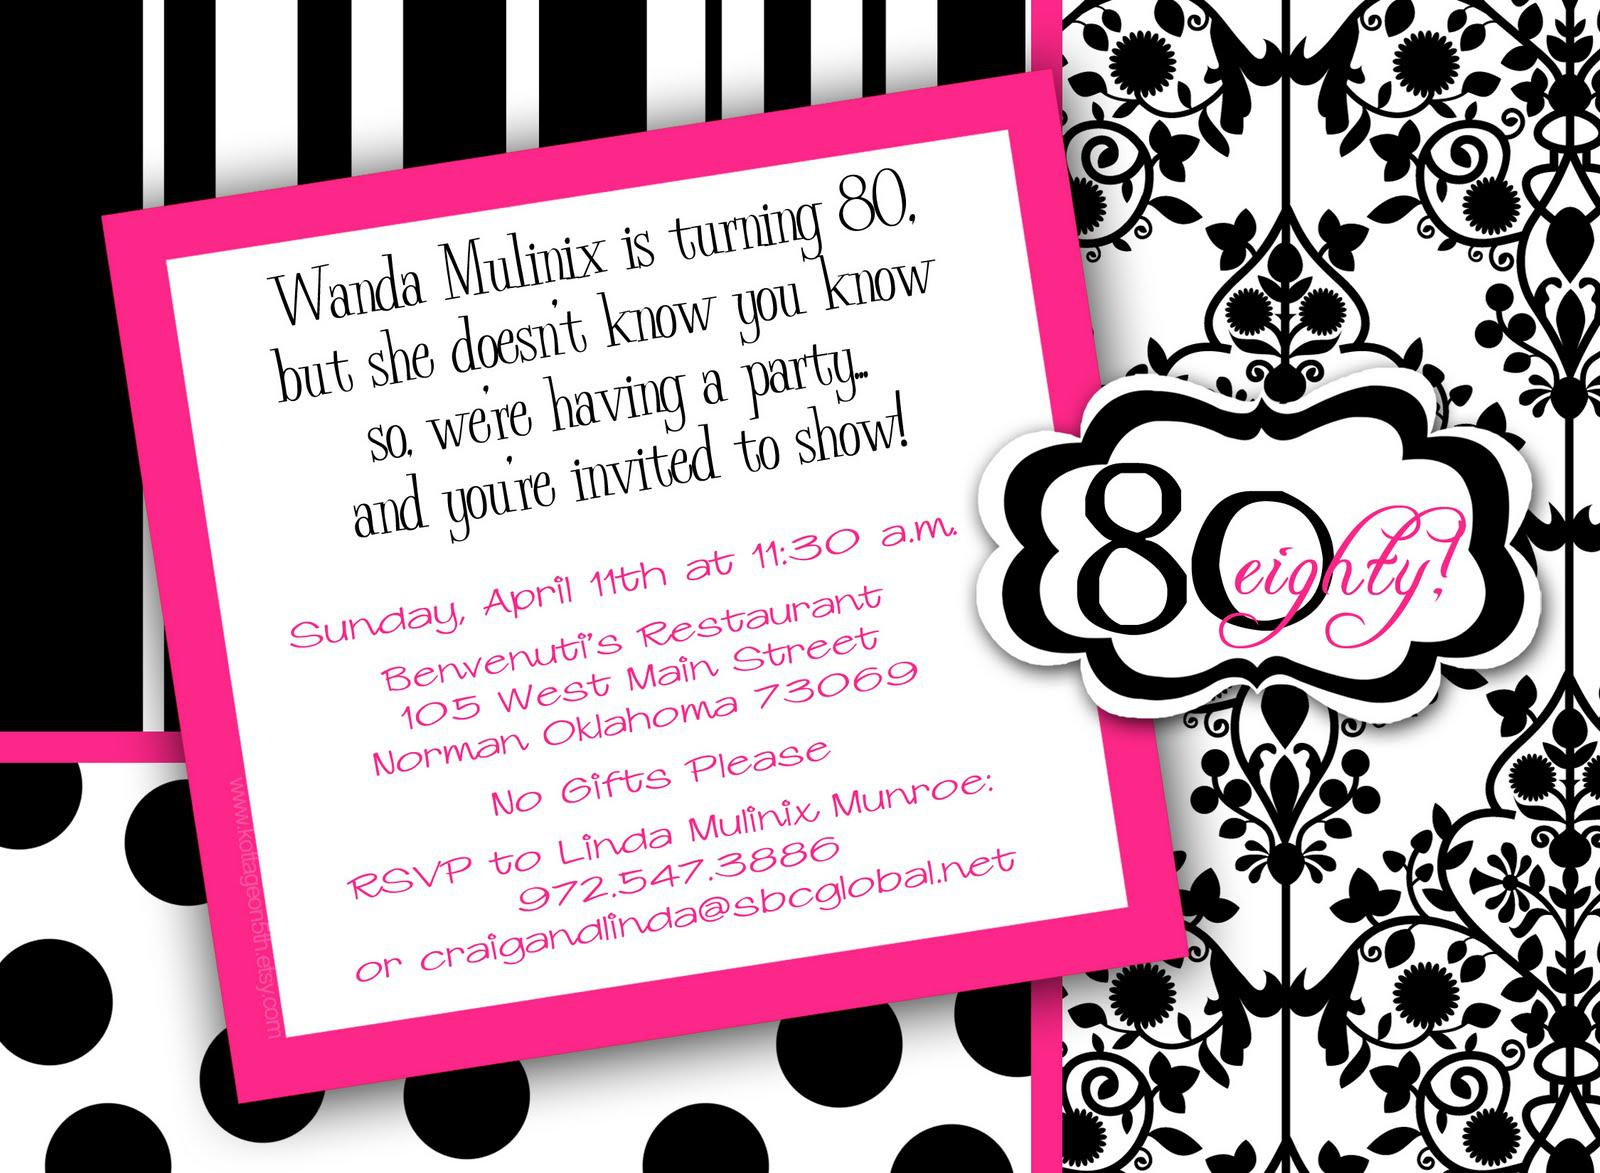 Insipre 80th Birthday Invitations Templates Zebra Theme With Black And White